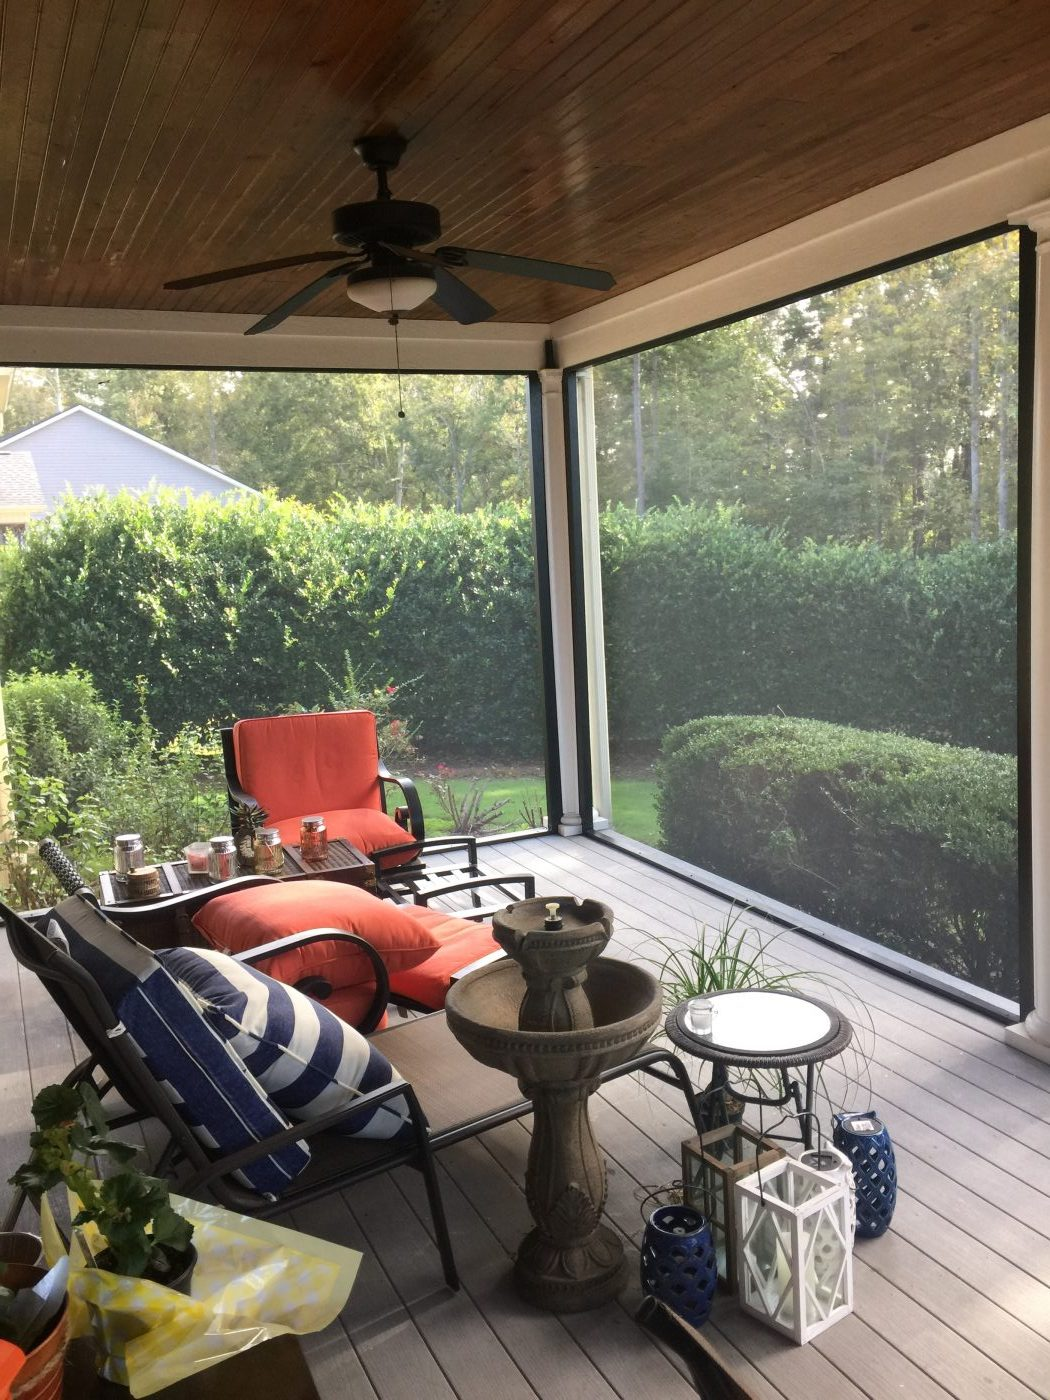 Large Span Screened Porch for Great Views to Yard